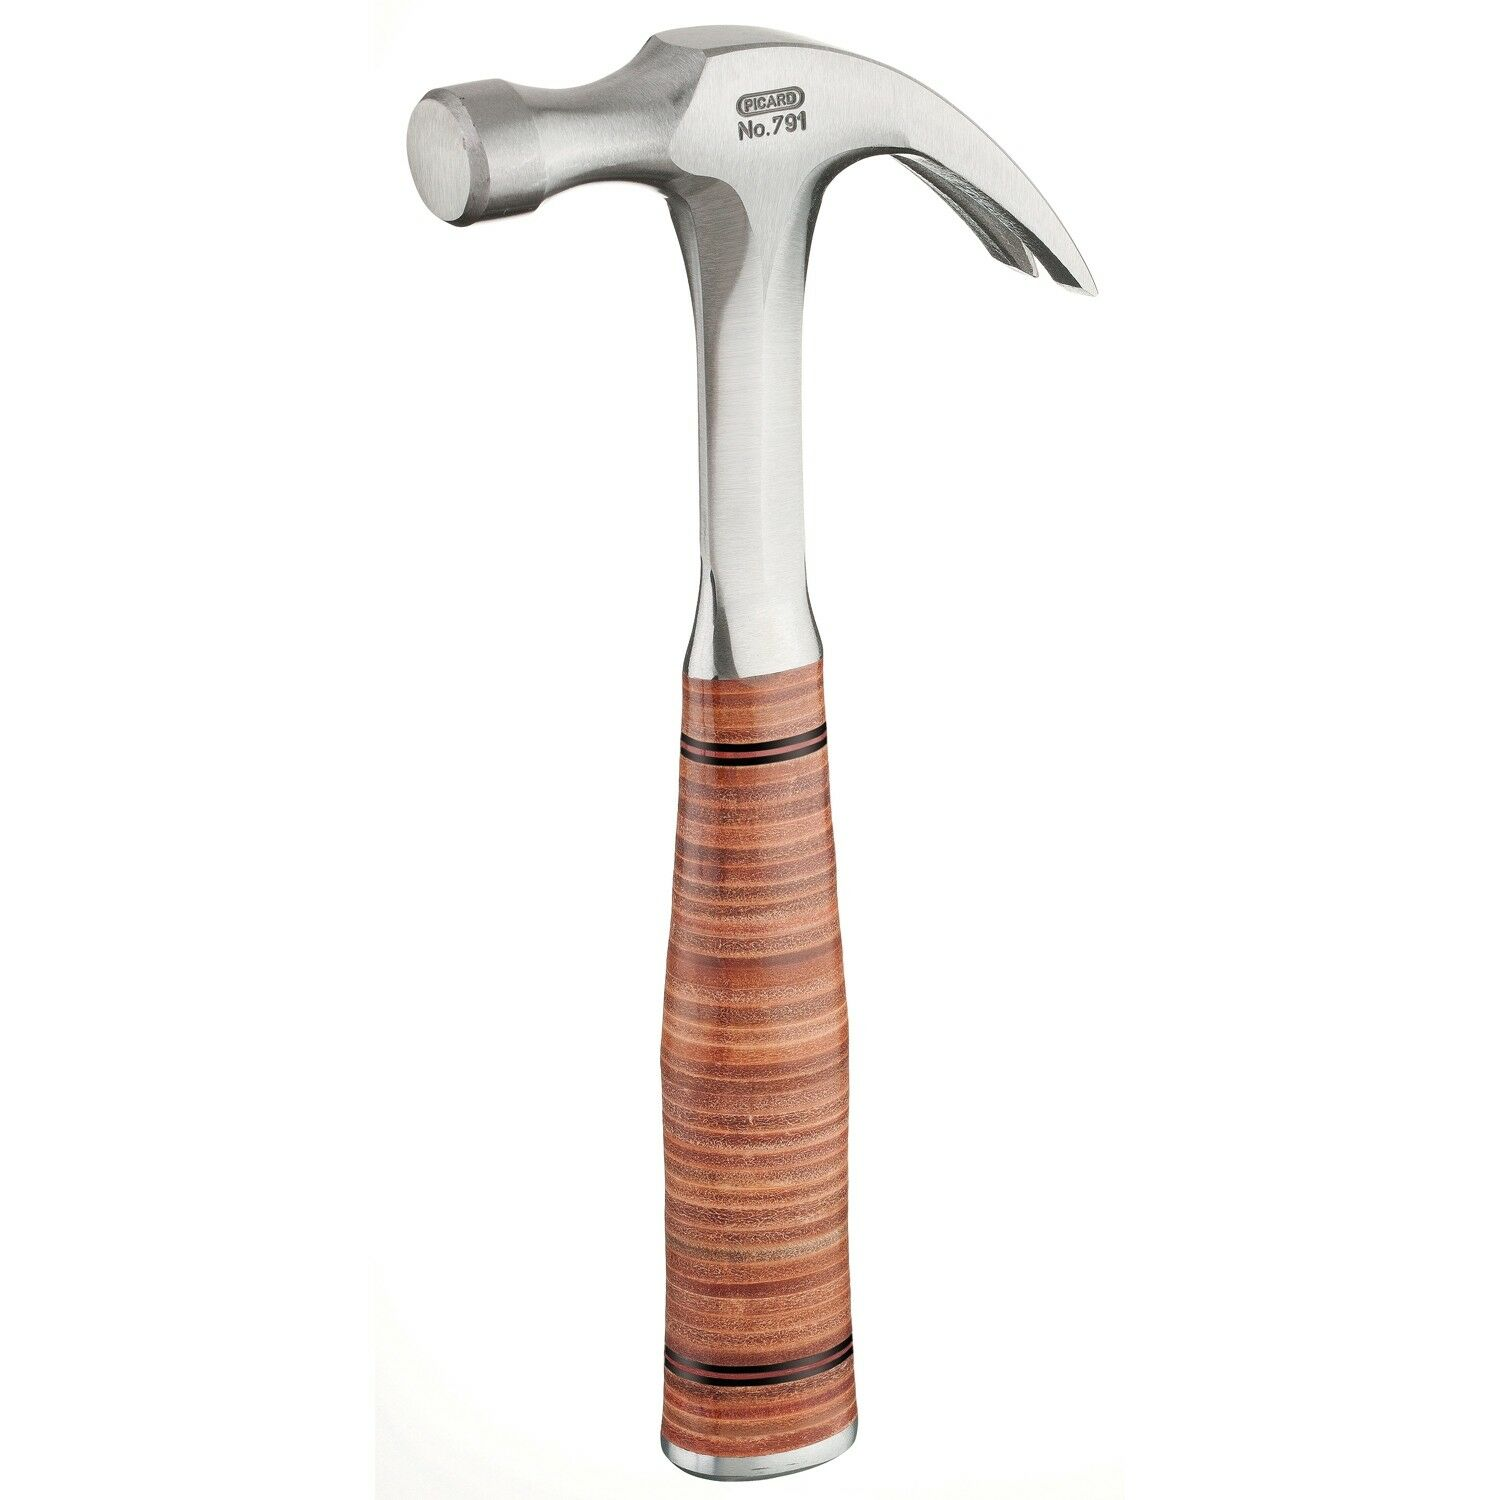 Picard Solid Forged Claw Hammer With Leather Grip Handle (Various Weights)